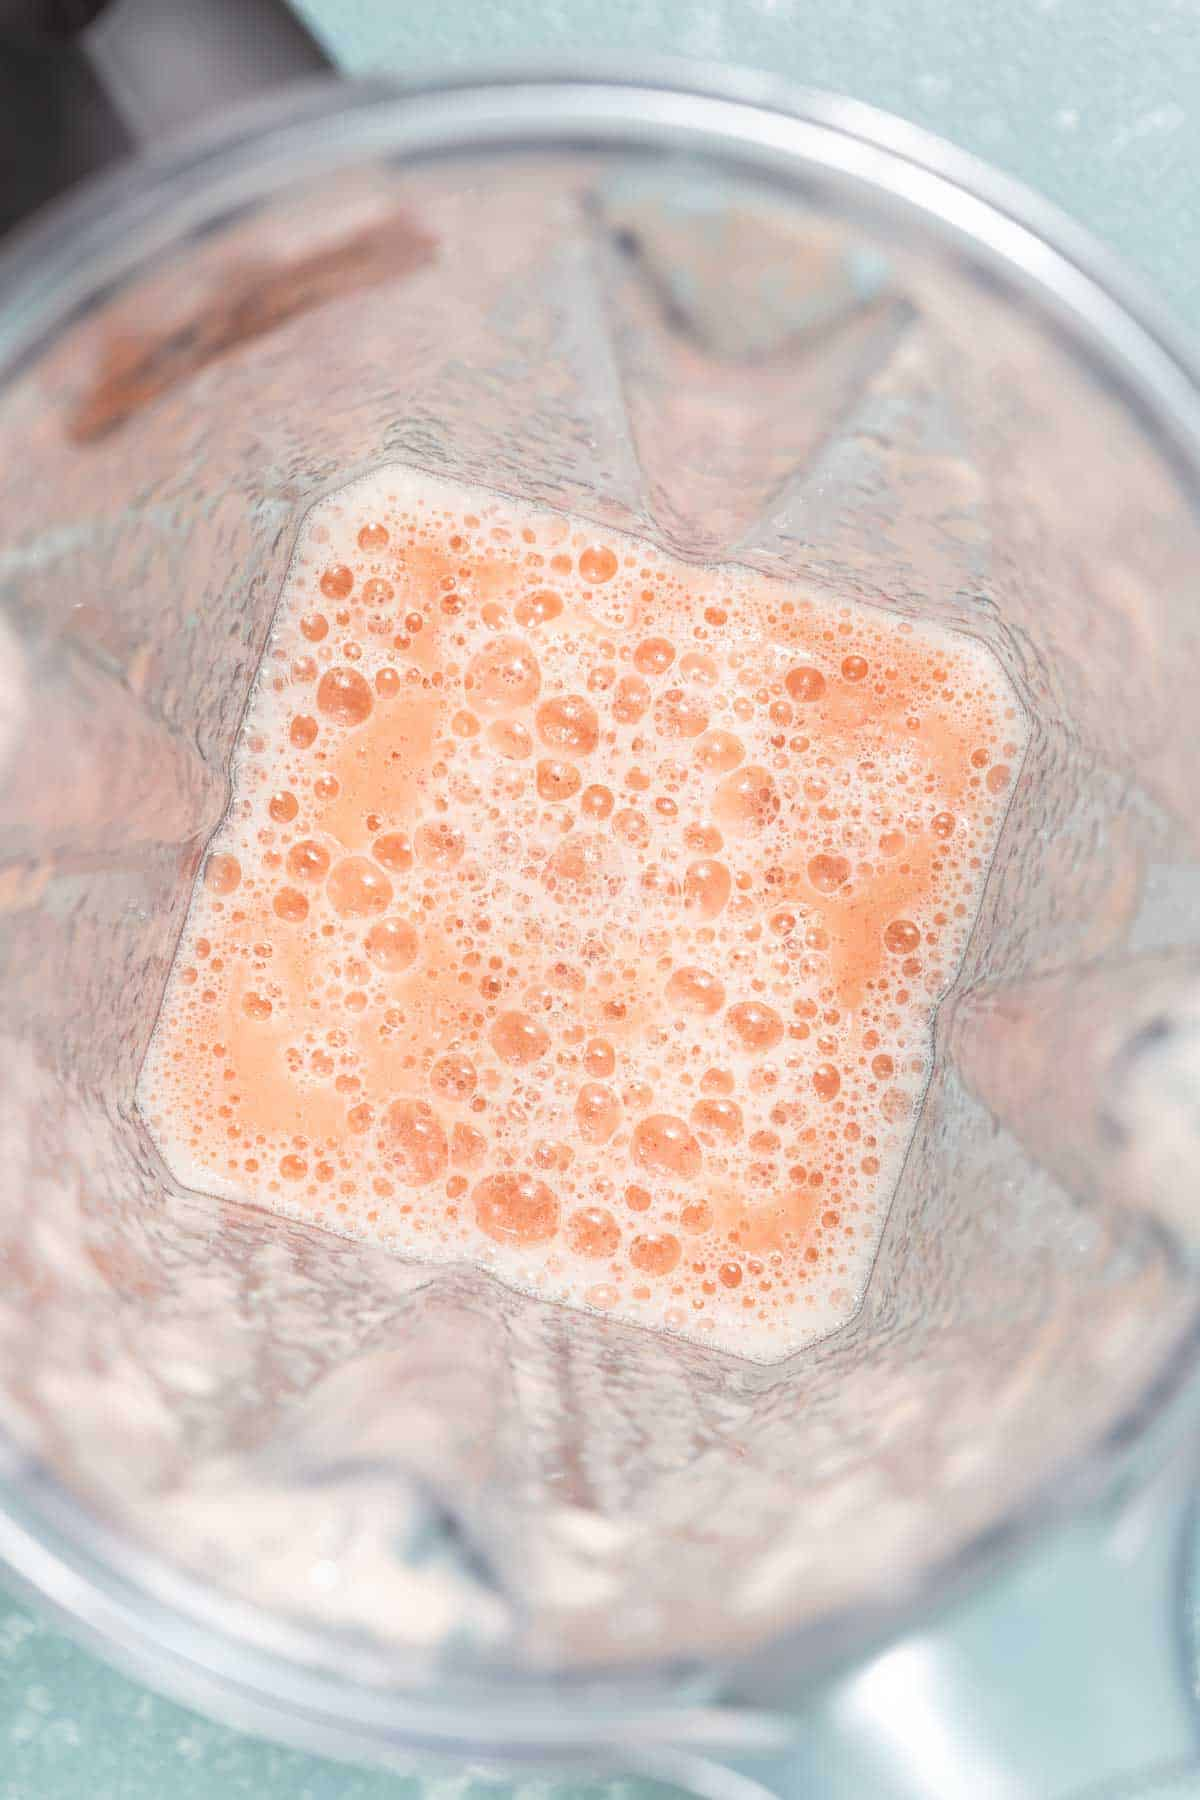 Overhead view of a blender with frothy orange liquid